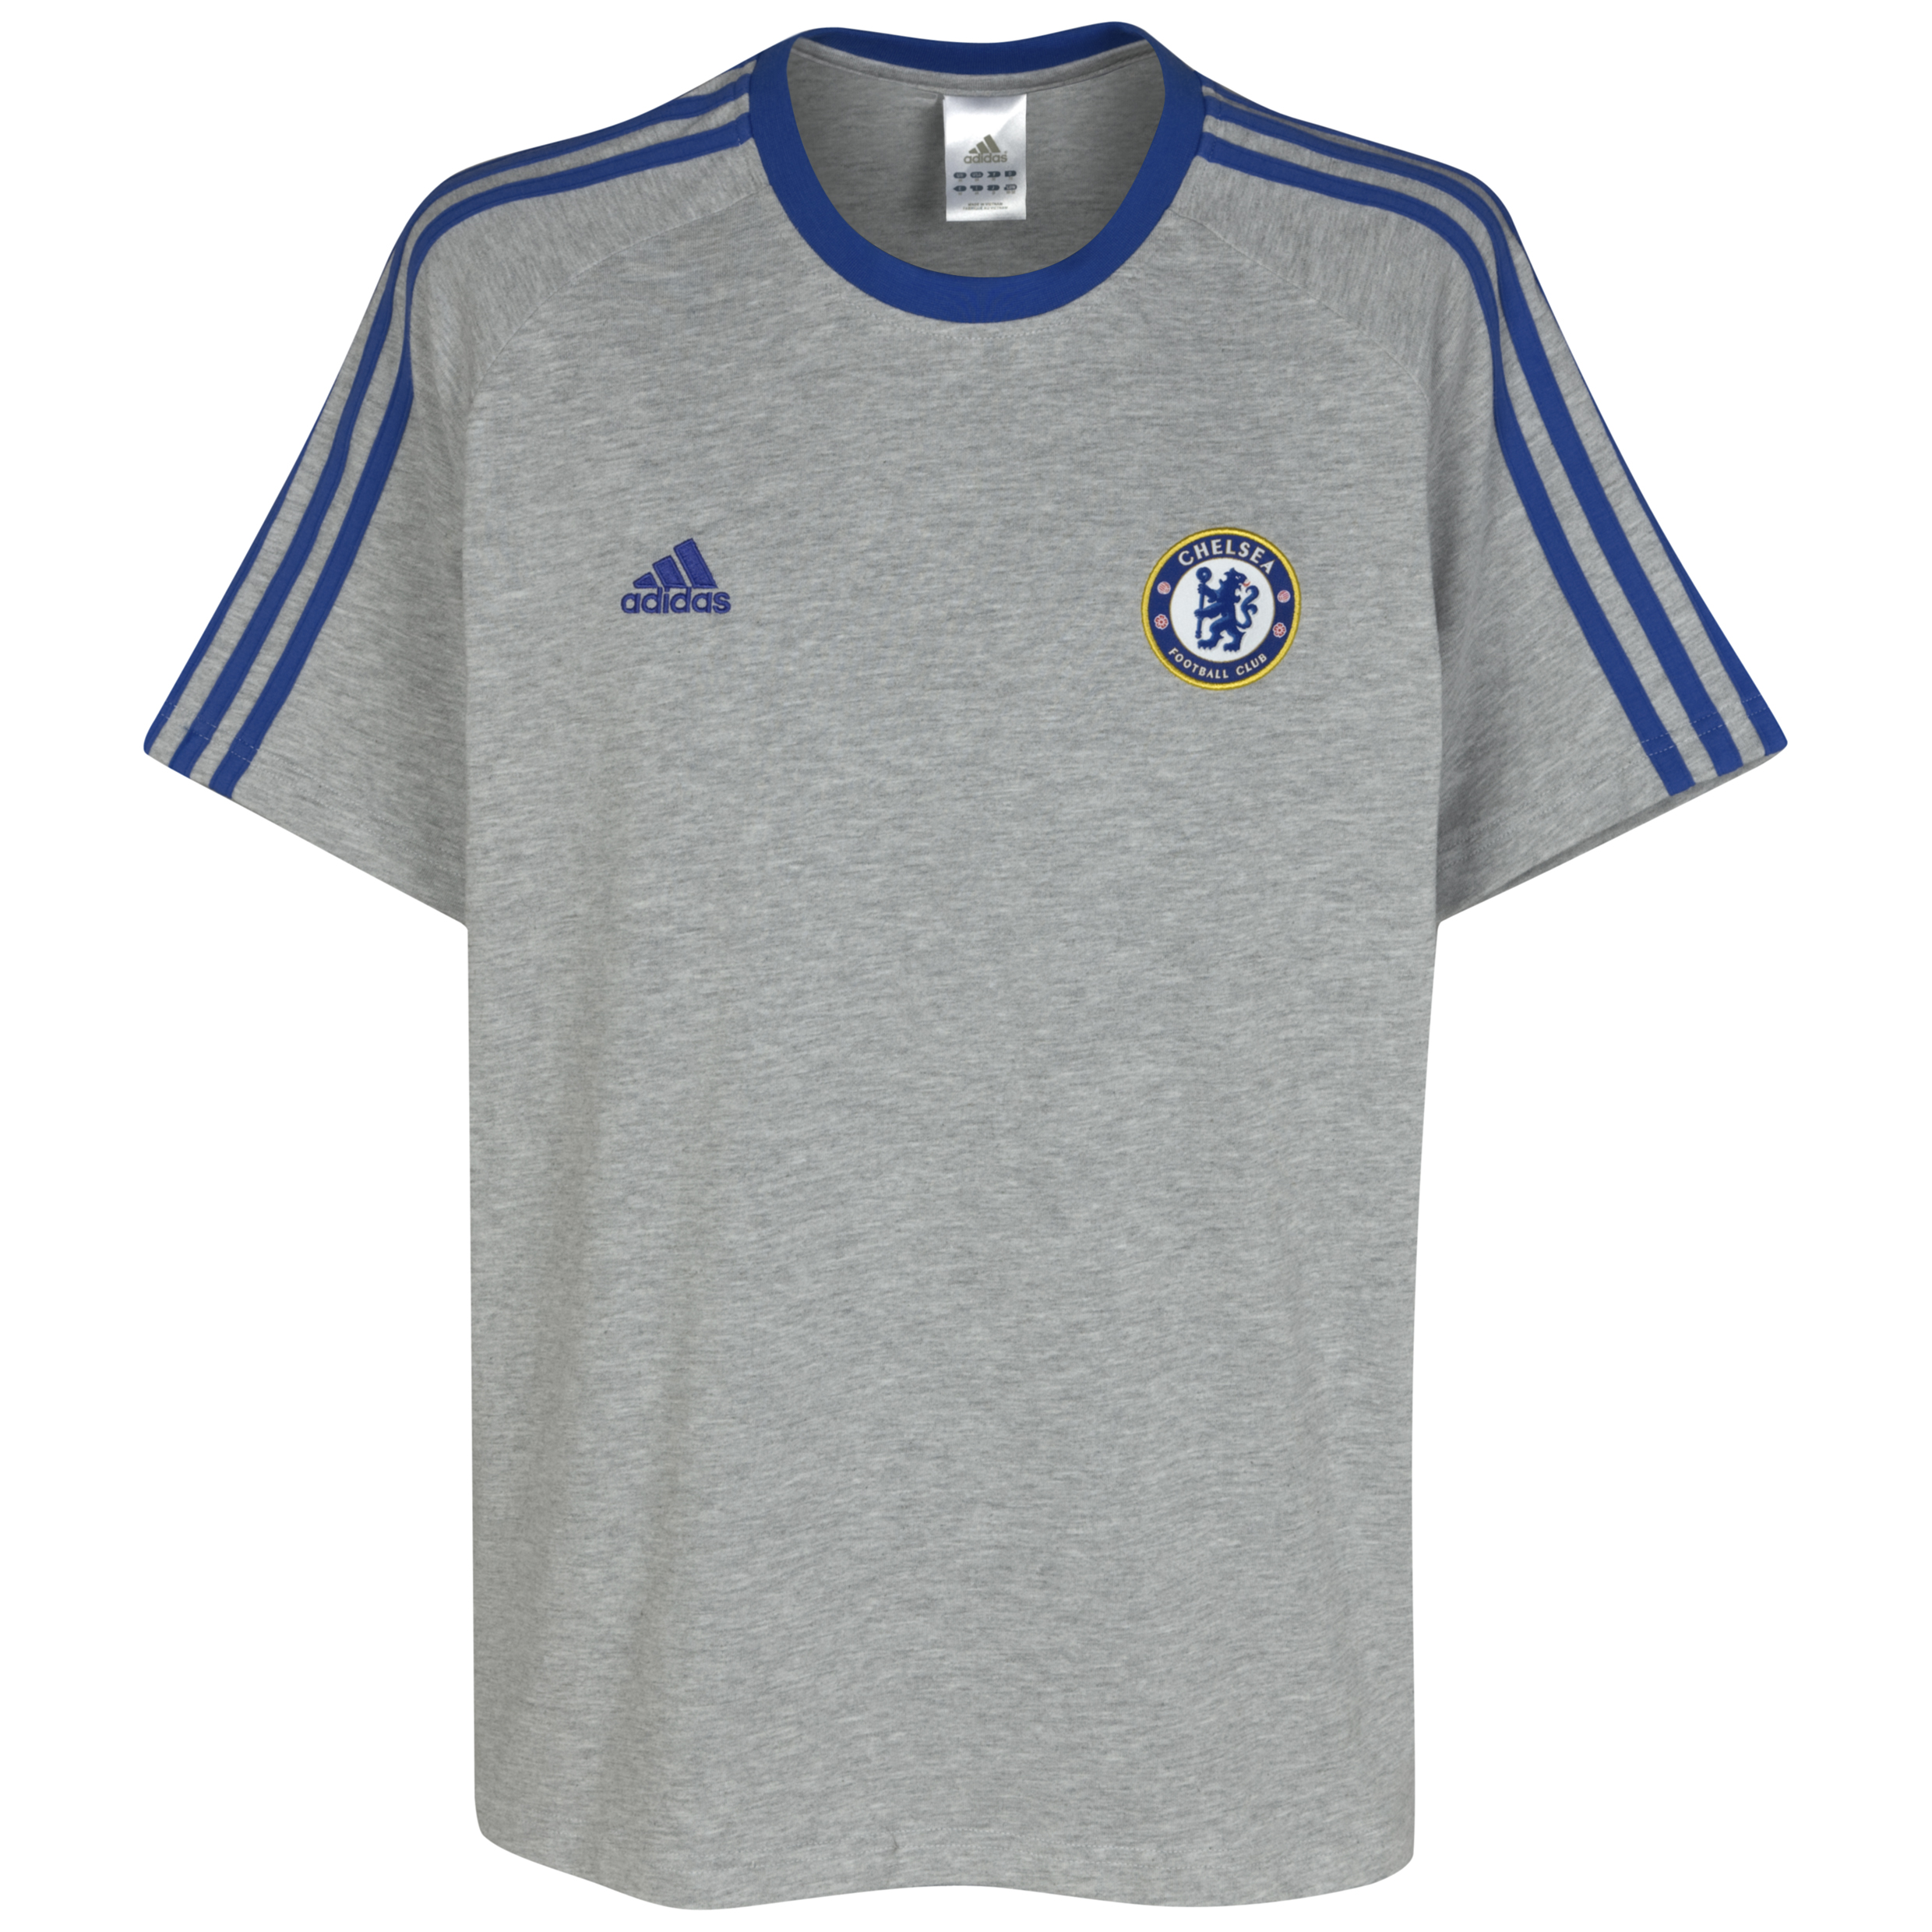 adidas Chelsea Core T-Shirt - Kids - Medium Grey Heather/Cfc Reflex Blue